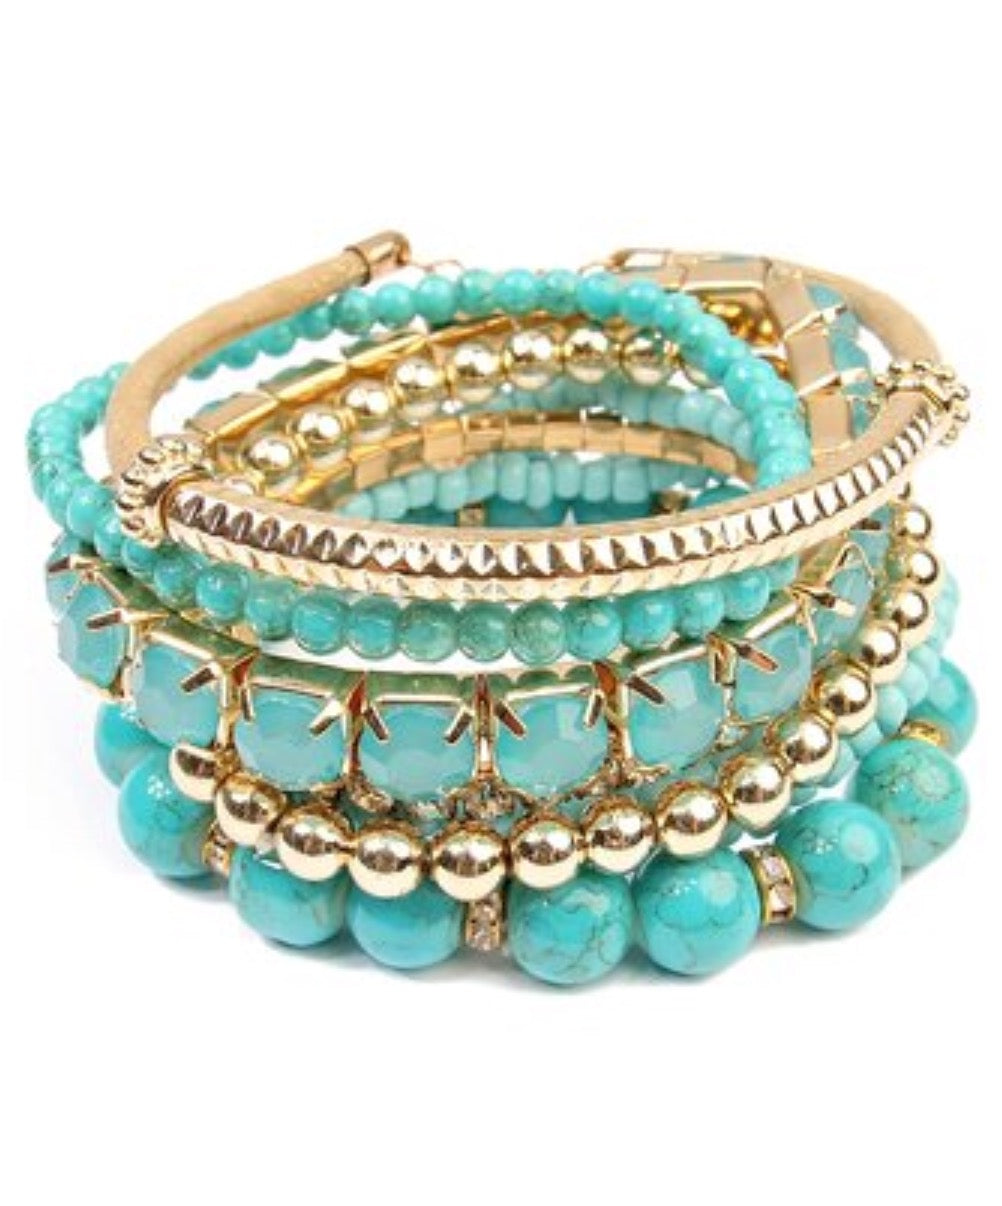 Bracelet - Teal & Goldtone Medley Set